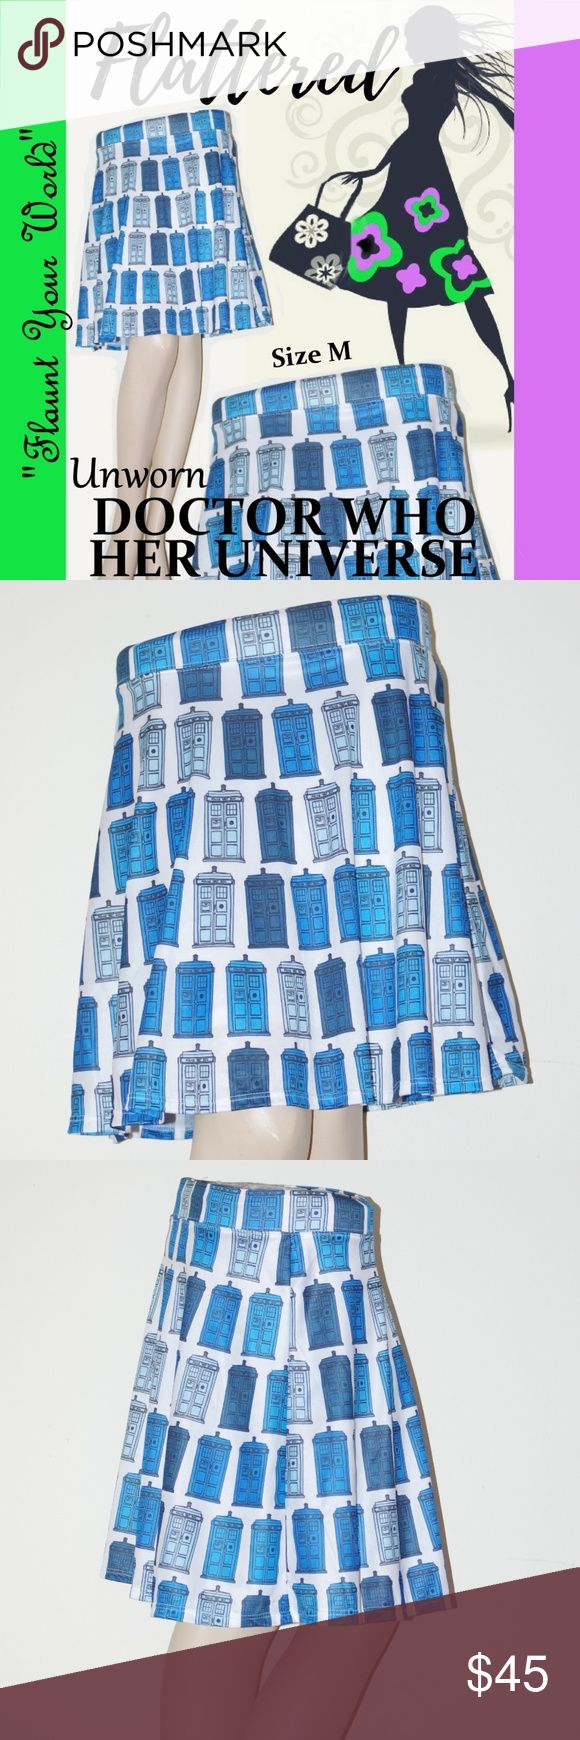 "CUTE SKIRT DR WHO TARDIS PRINT Fun Novel Dress M CUTE Skater SKIRT DR WHO TARDIS PRINT Fun Novel Dress M By DOCTOR WHO HER UNIVERSE ""Flaunt Your World"" Phone booth Tardis Print Skirt ADORABLE Skater Skirt! Unworn Size Medium Lined 100% Polyester for easy care Made in USA Elastic Waist band Skirt Length: 18.5"" Waist measured flat across unstretched:  13"" Bottom sweep about 74"" around bottom Cute skirt, perfect for layering with tights, tall boots, tall socks, leggings, jeggings, skinny jeans…"